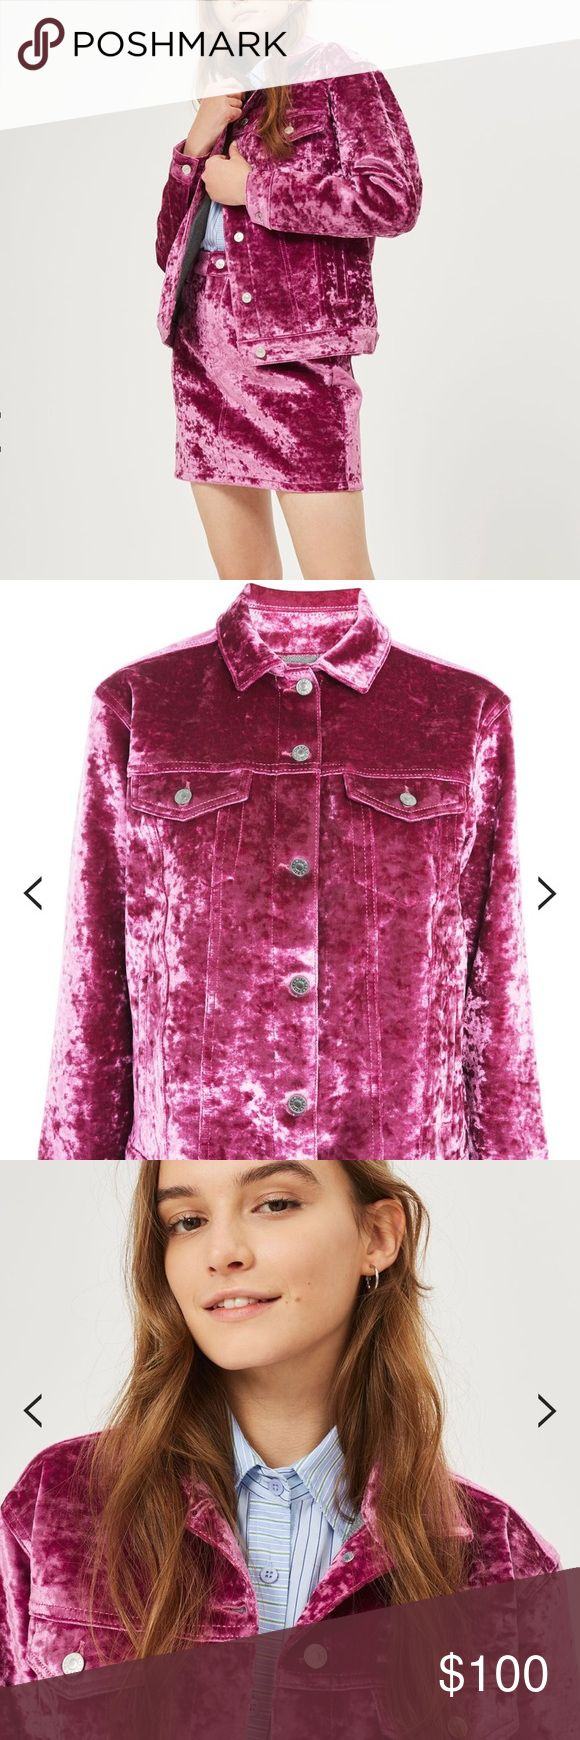 Topshop Velvet Denim Jacket We're obsessed with this oversized jacket in pink velvet bonded onto denim. A statement jacket in every sense, wear with it's matching skirt, a buttoned up shirt and white leather mules and become a real style guru. 59% Cotton, 38% Polyester, 3% Elastane. Machine wash. Topshop Jackets & Coats